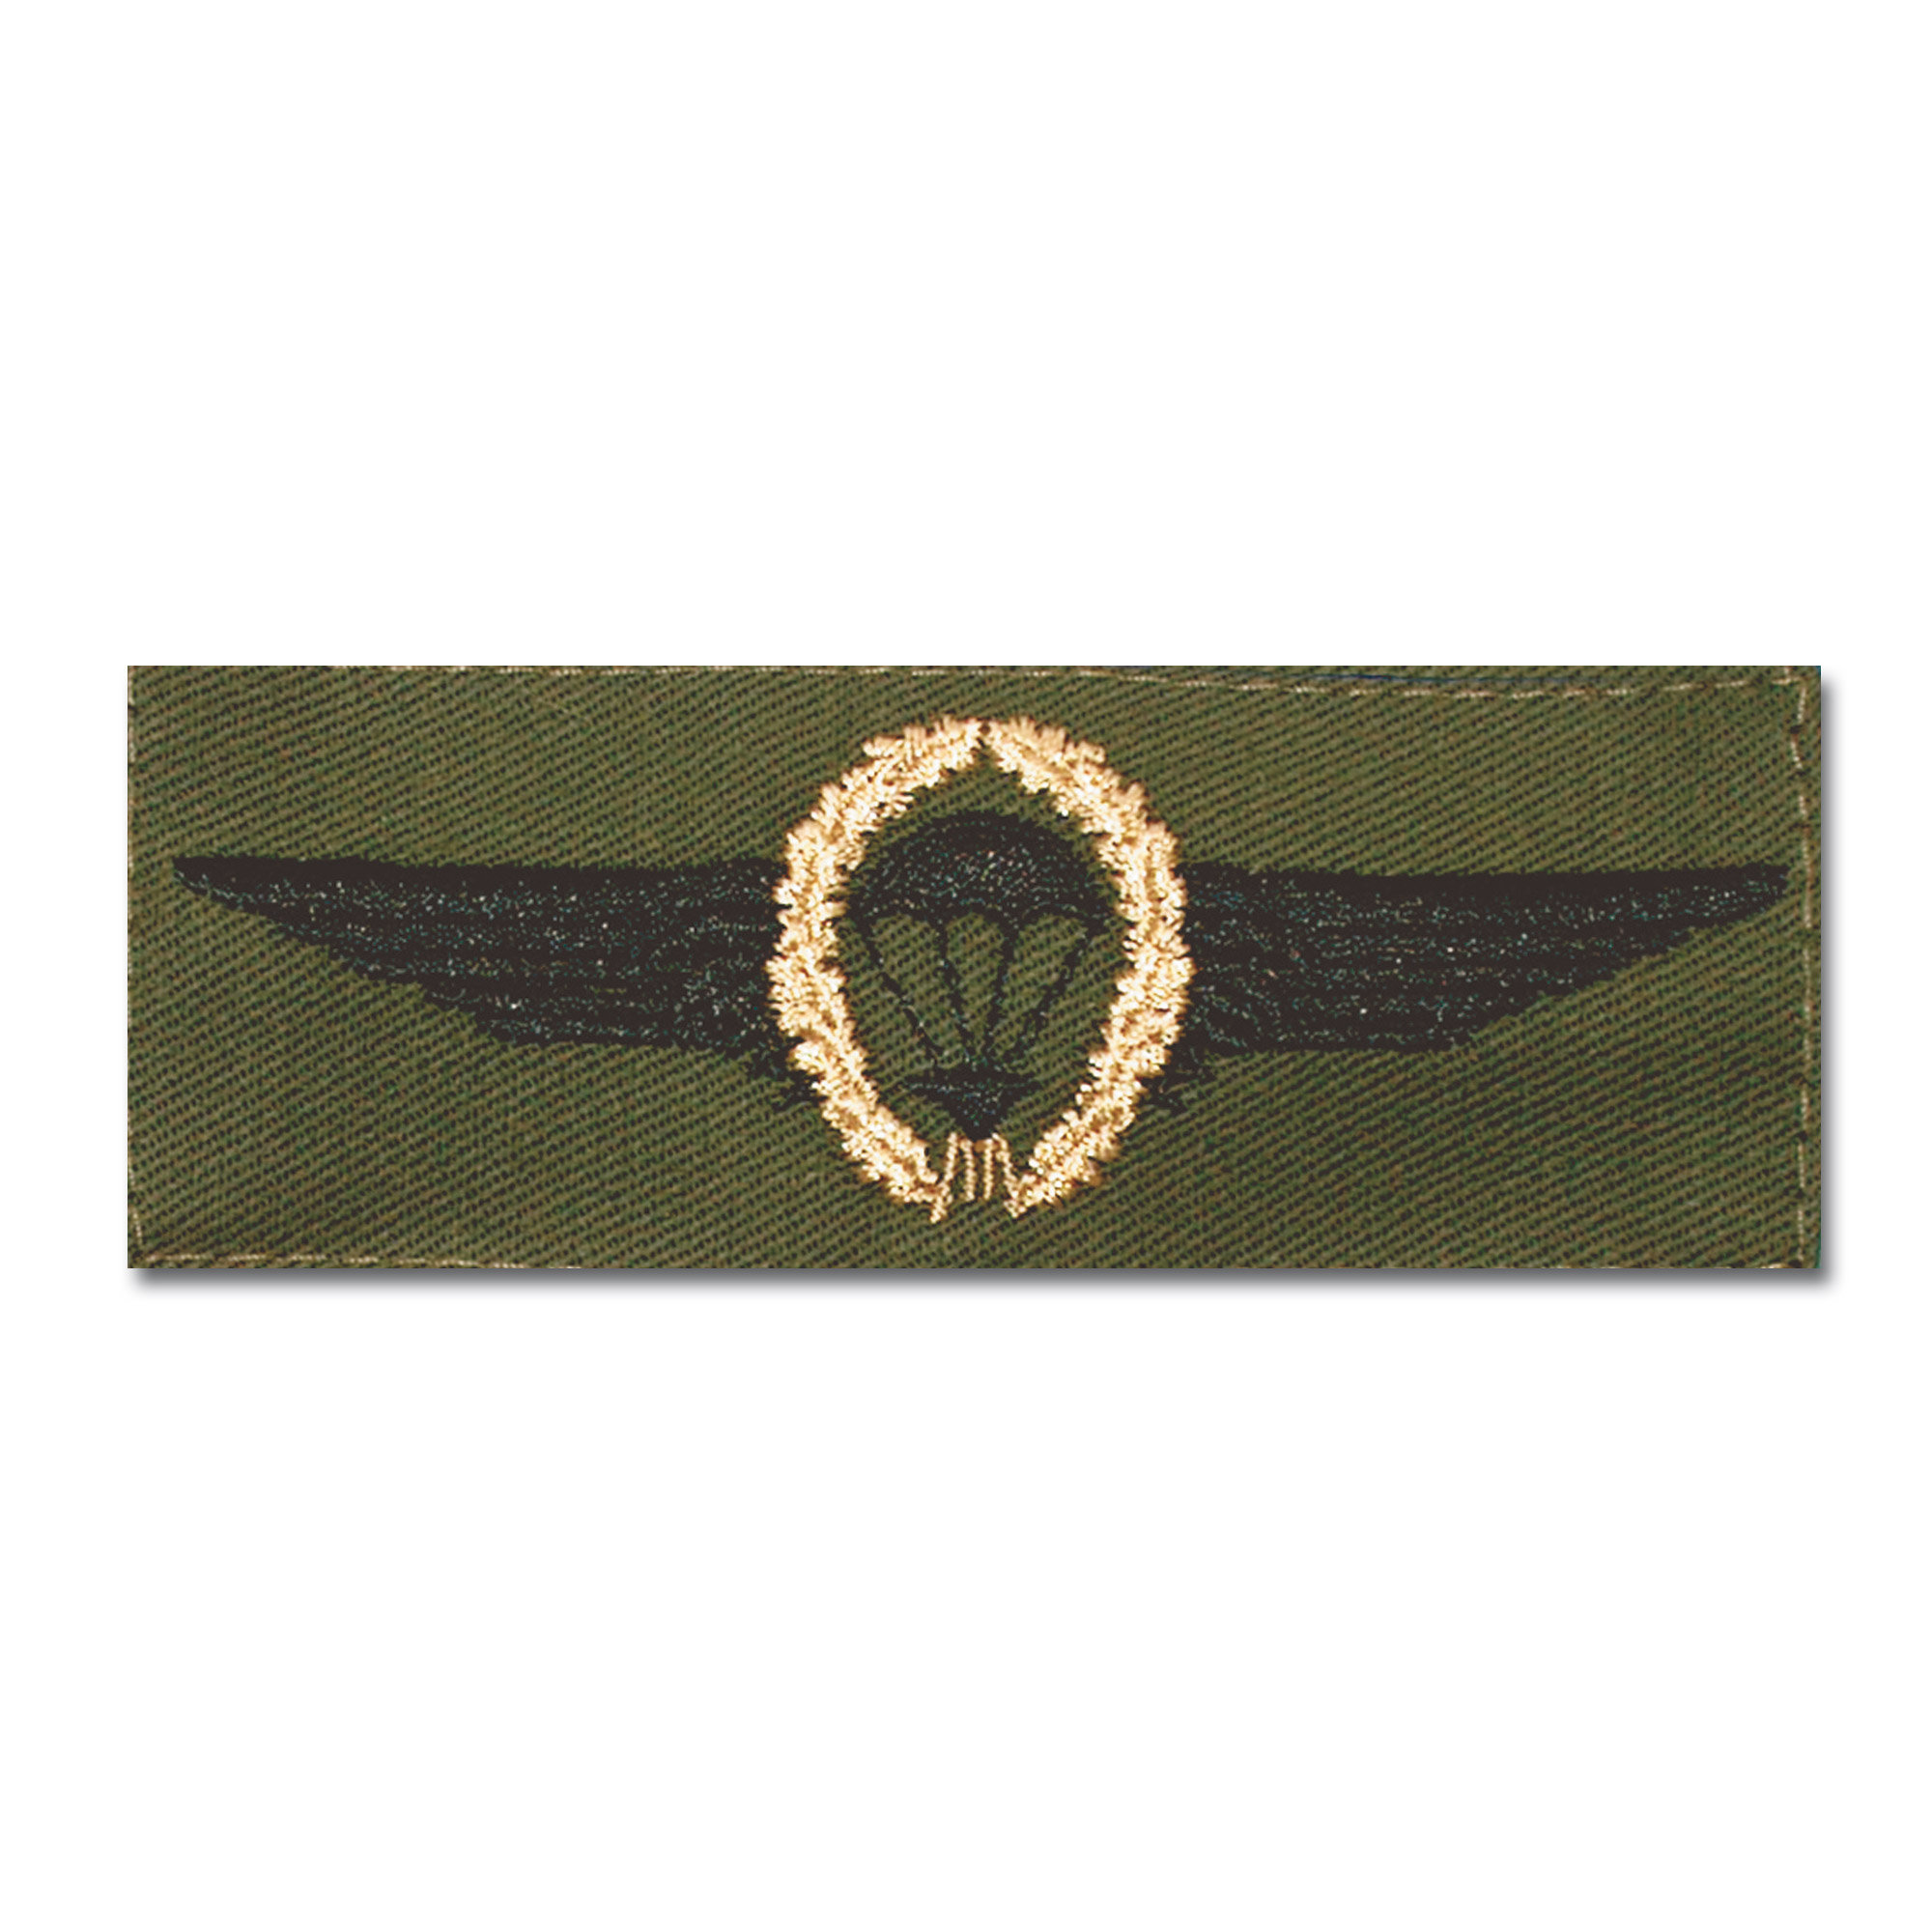 German Airborne branch insignia bronce/oliv